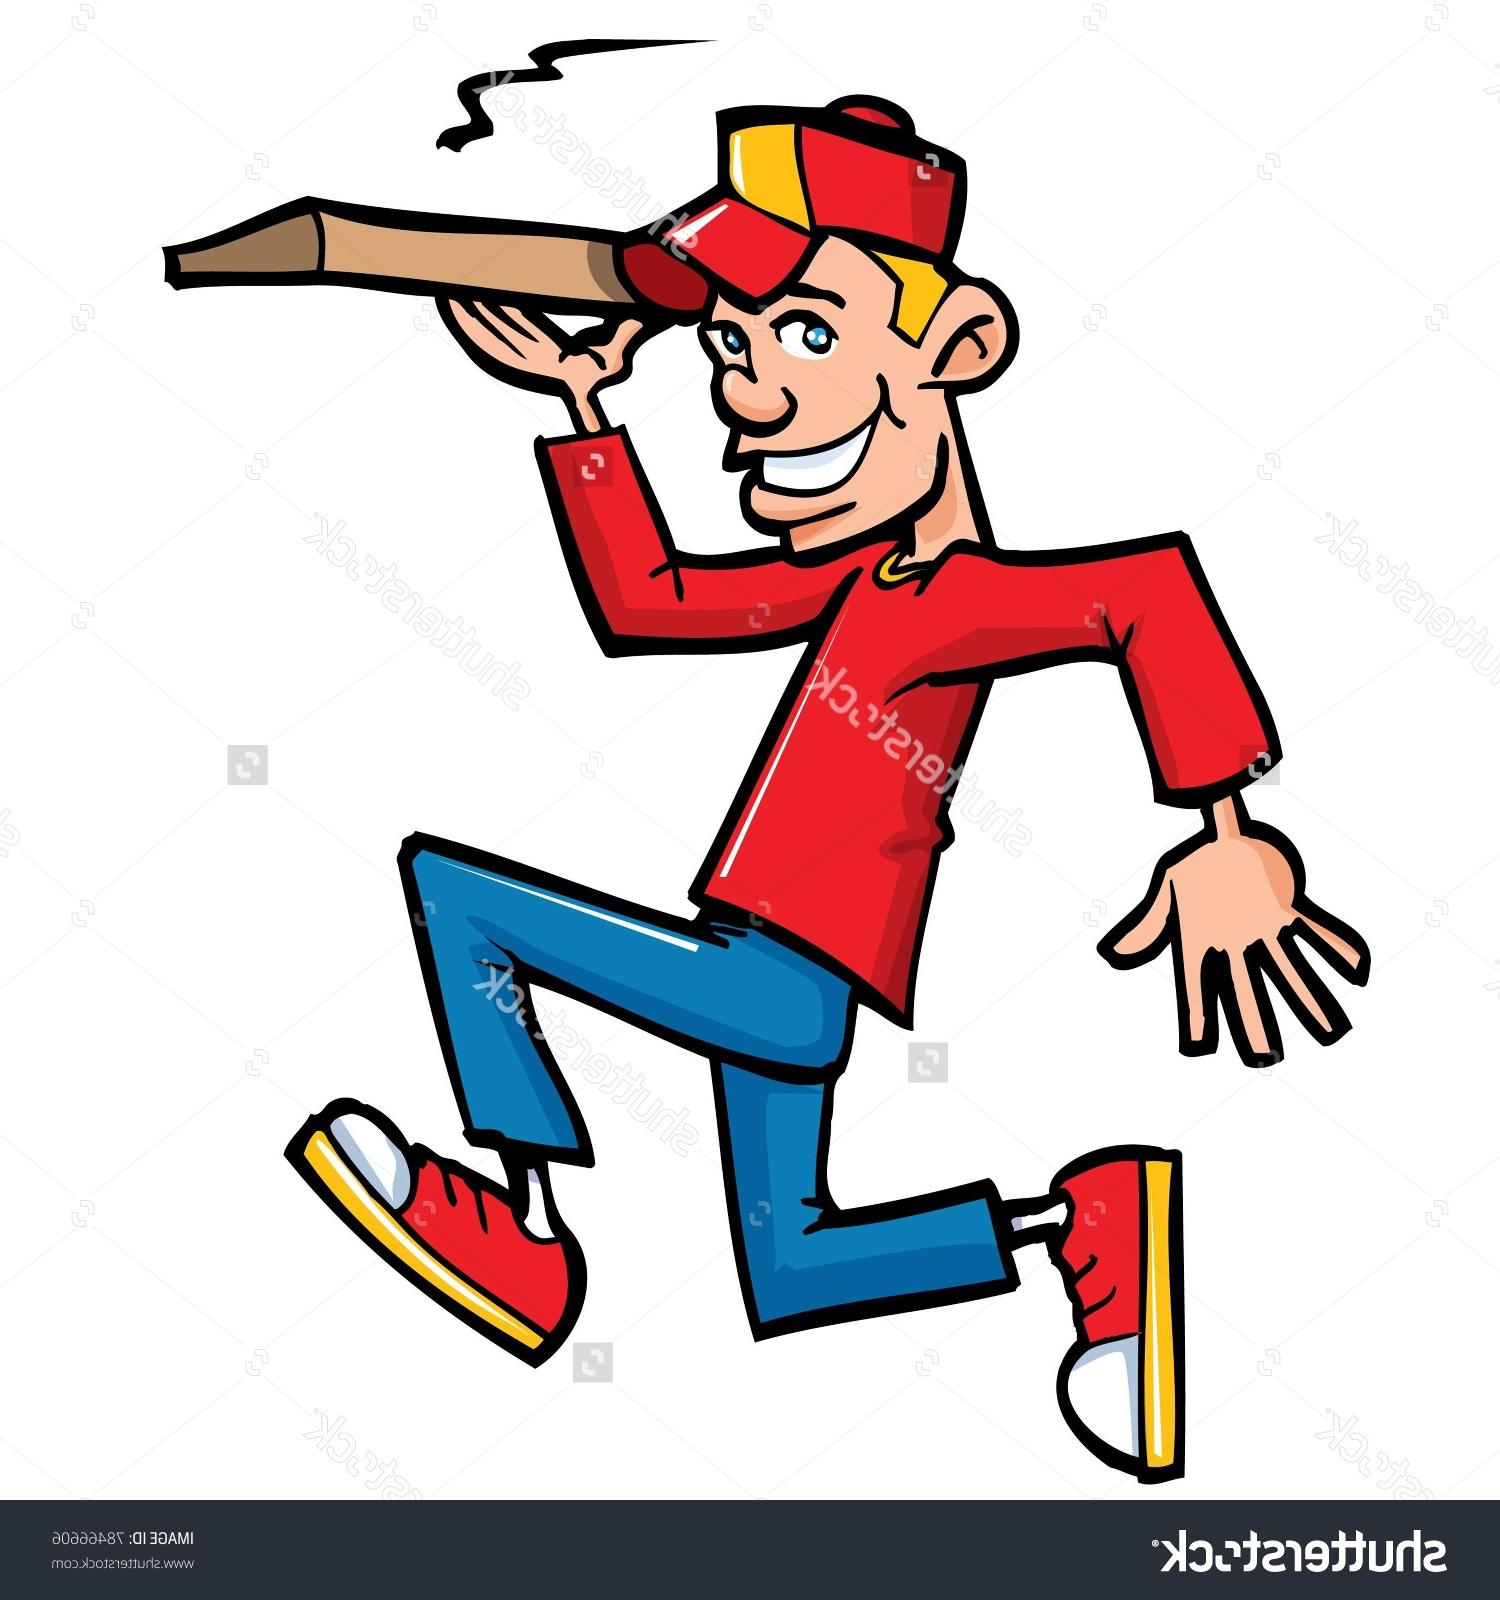 1500x1600 Best Hd Stock Vector Cartoon Of Pizza Running Delivery Boy